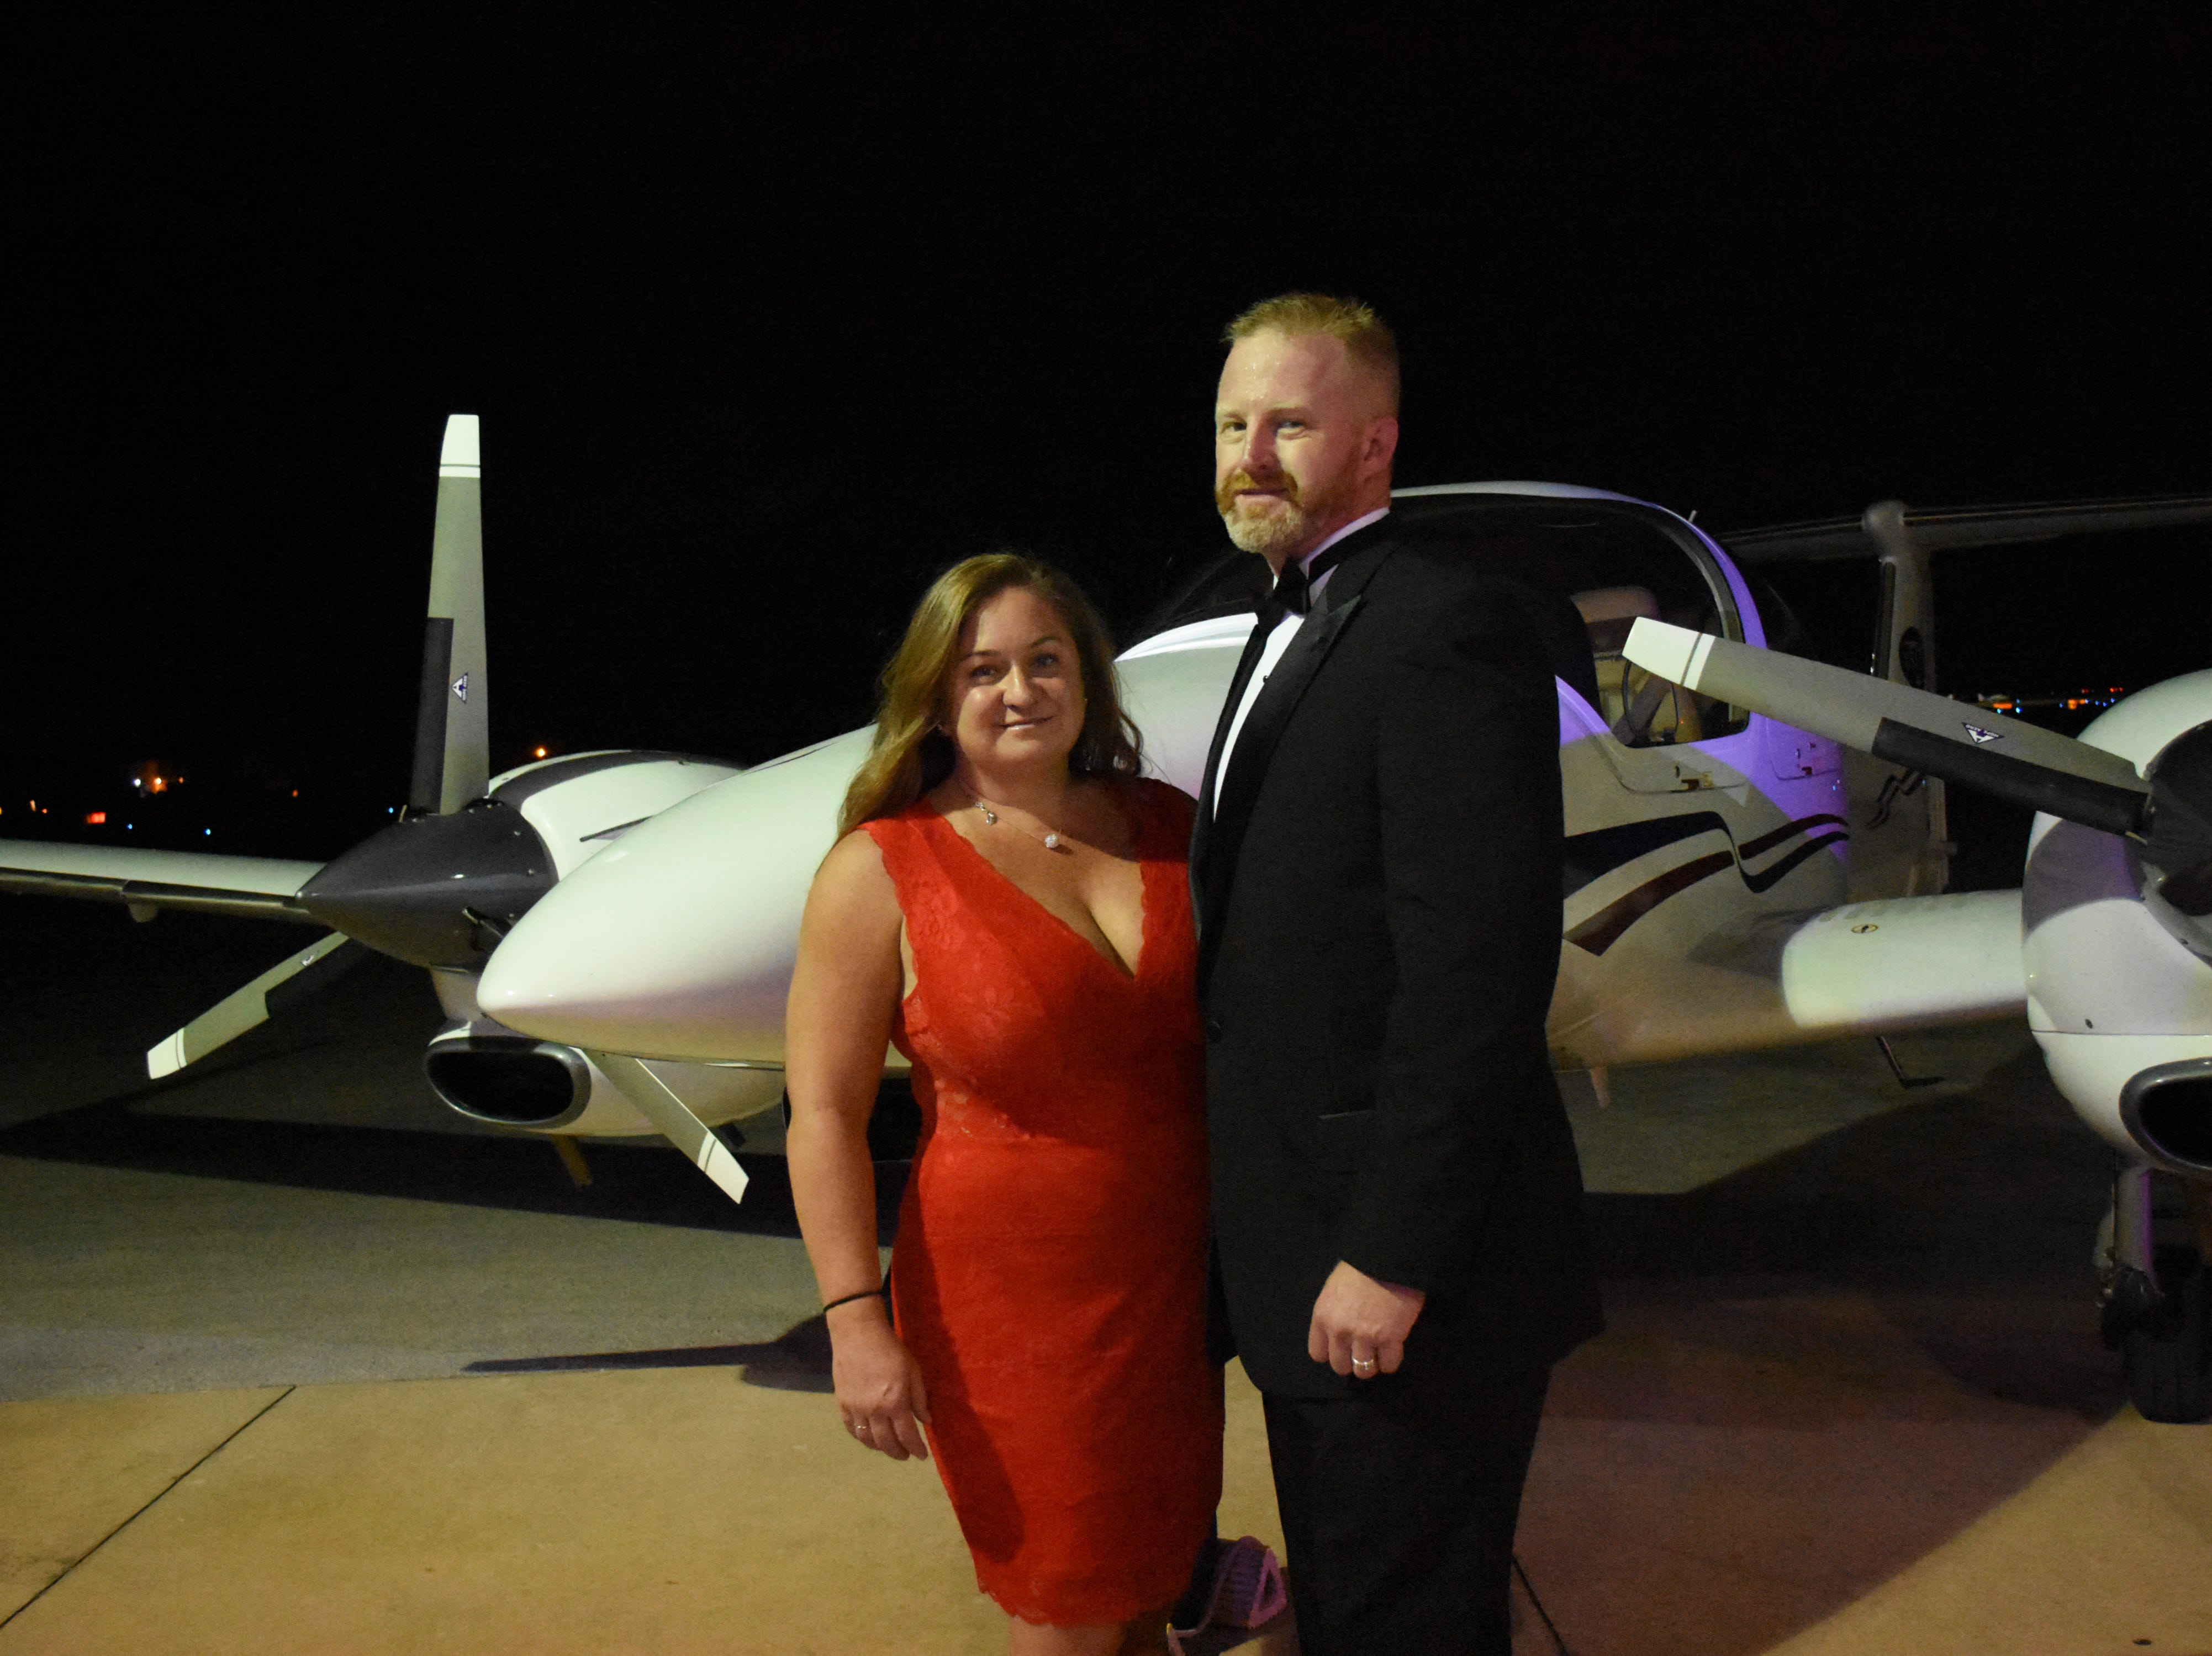 USATS President Chad Copeland and his wife Robyn pose for a photo.